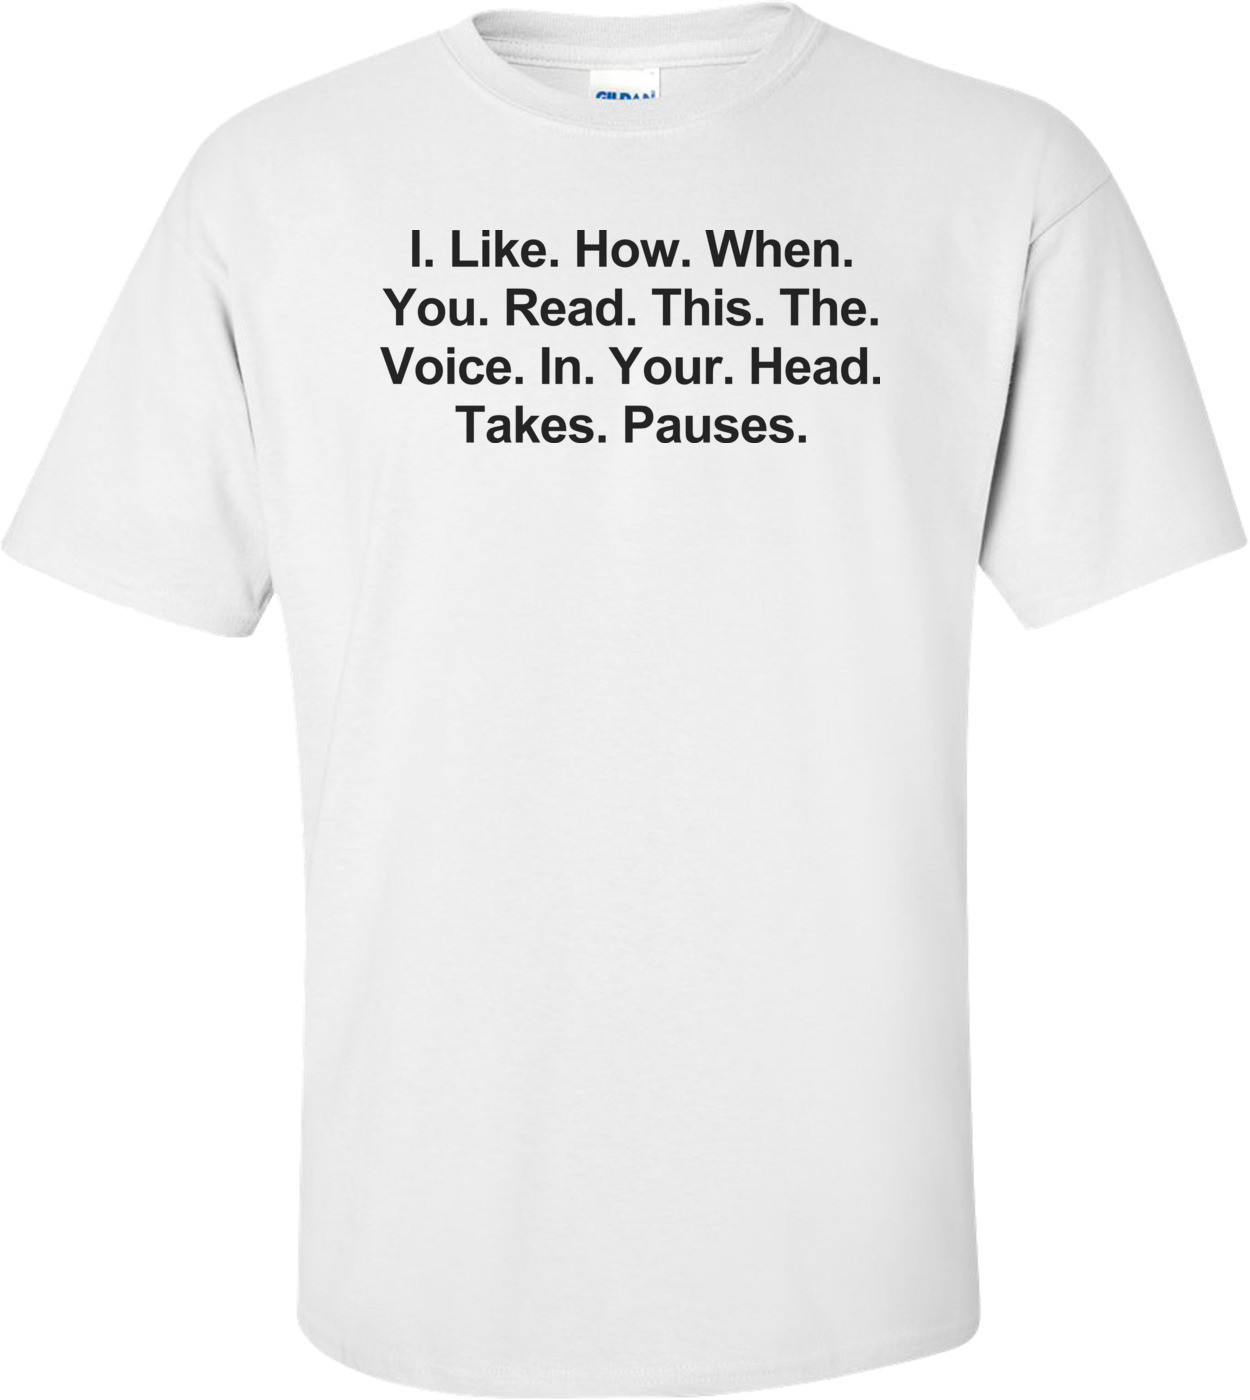 I. Like. How. When. You. Read. This. The. Voice. In. Your. Head. Takes. Pauses. Funny Shirt